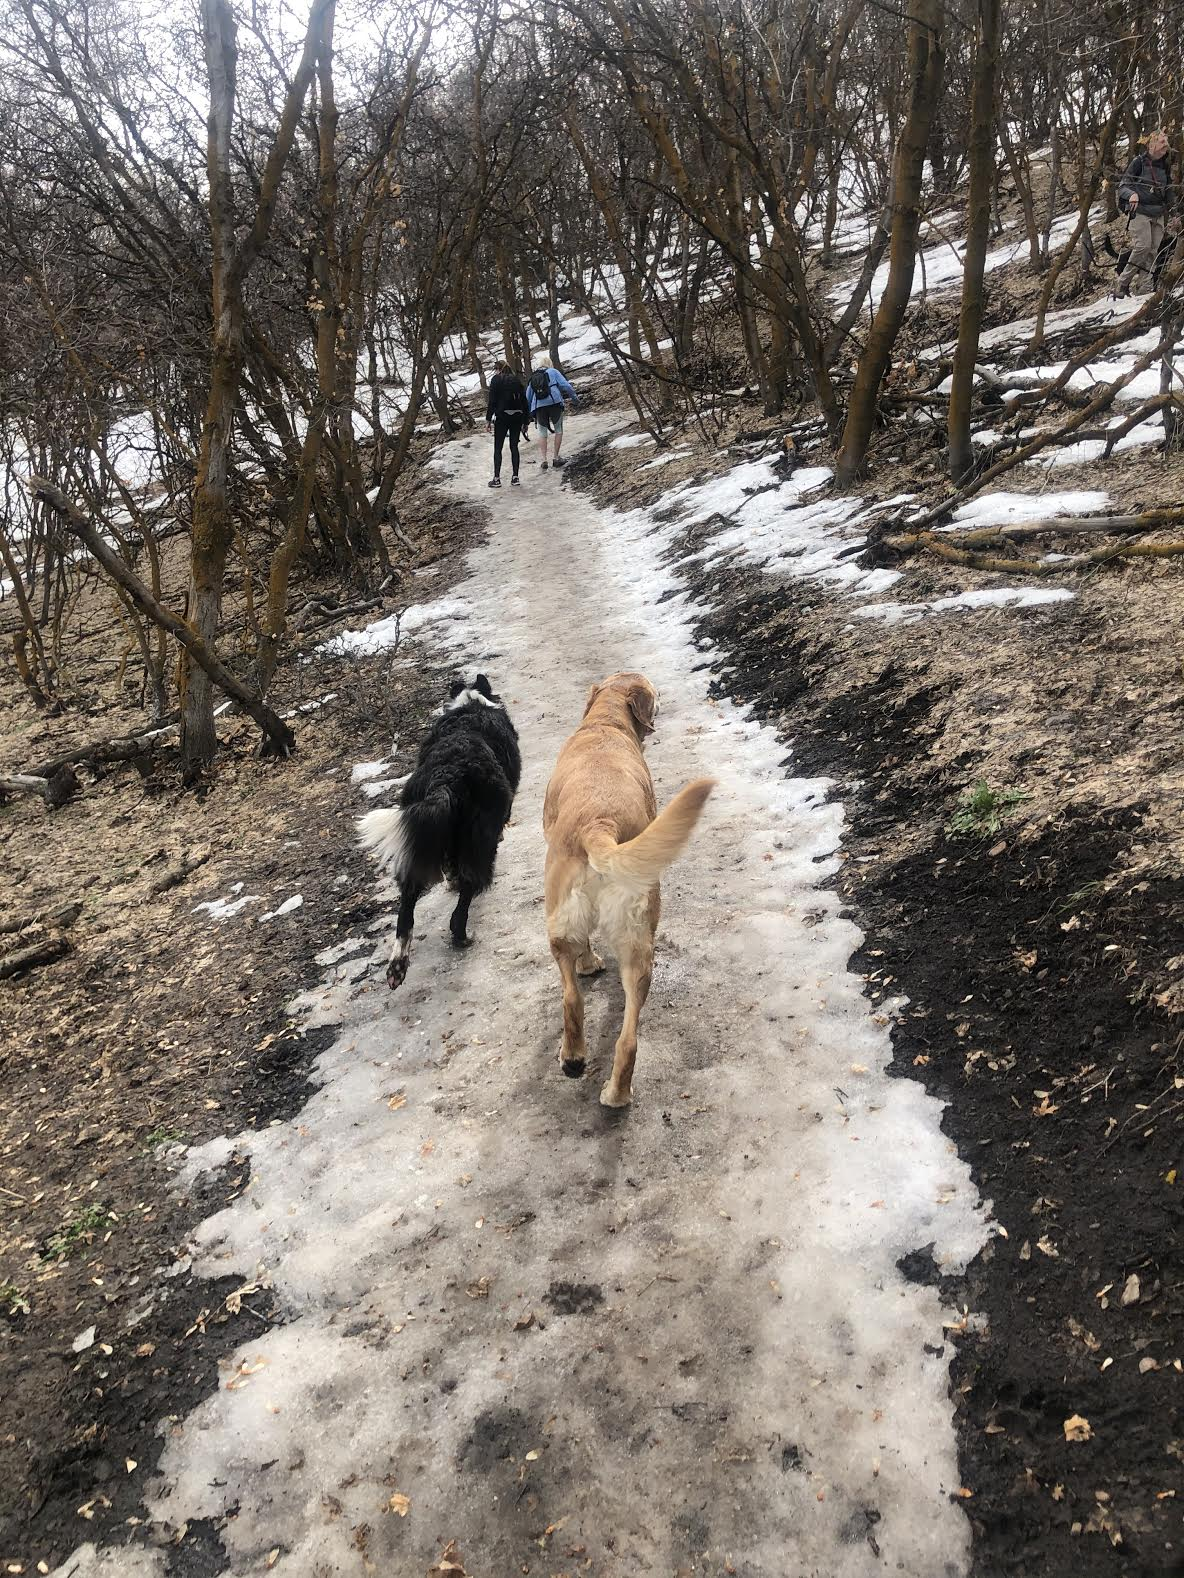 Hiking the Wild Rose Trail